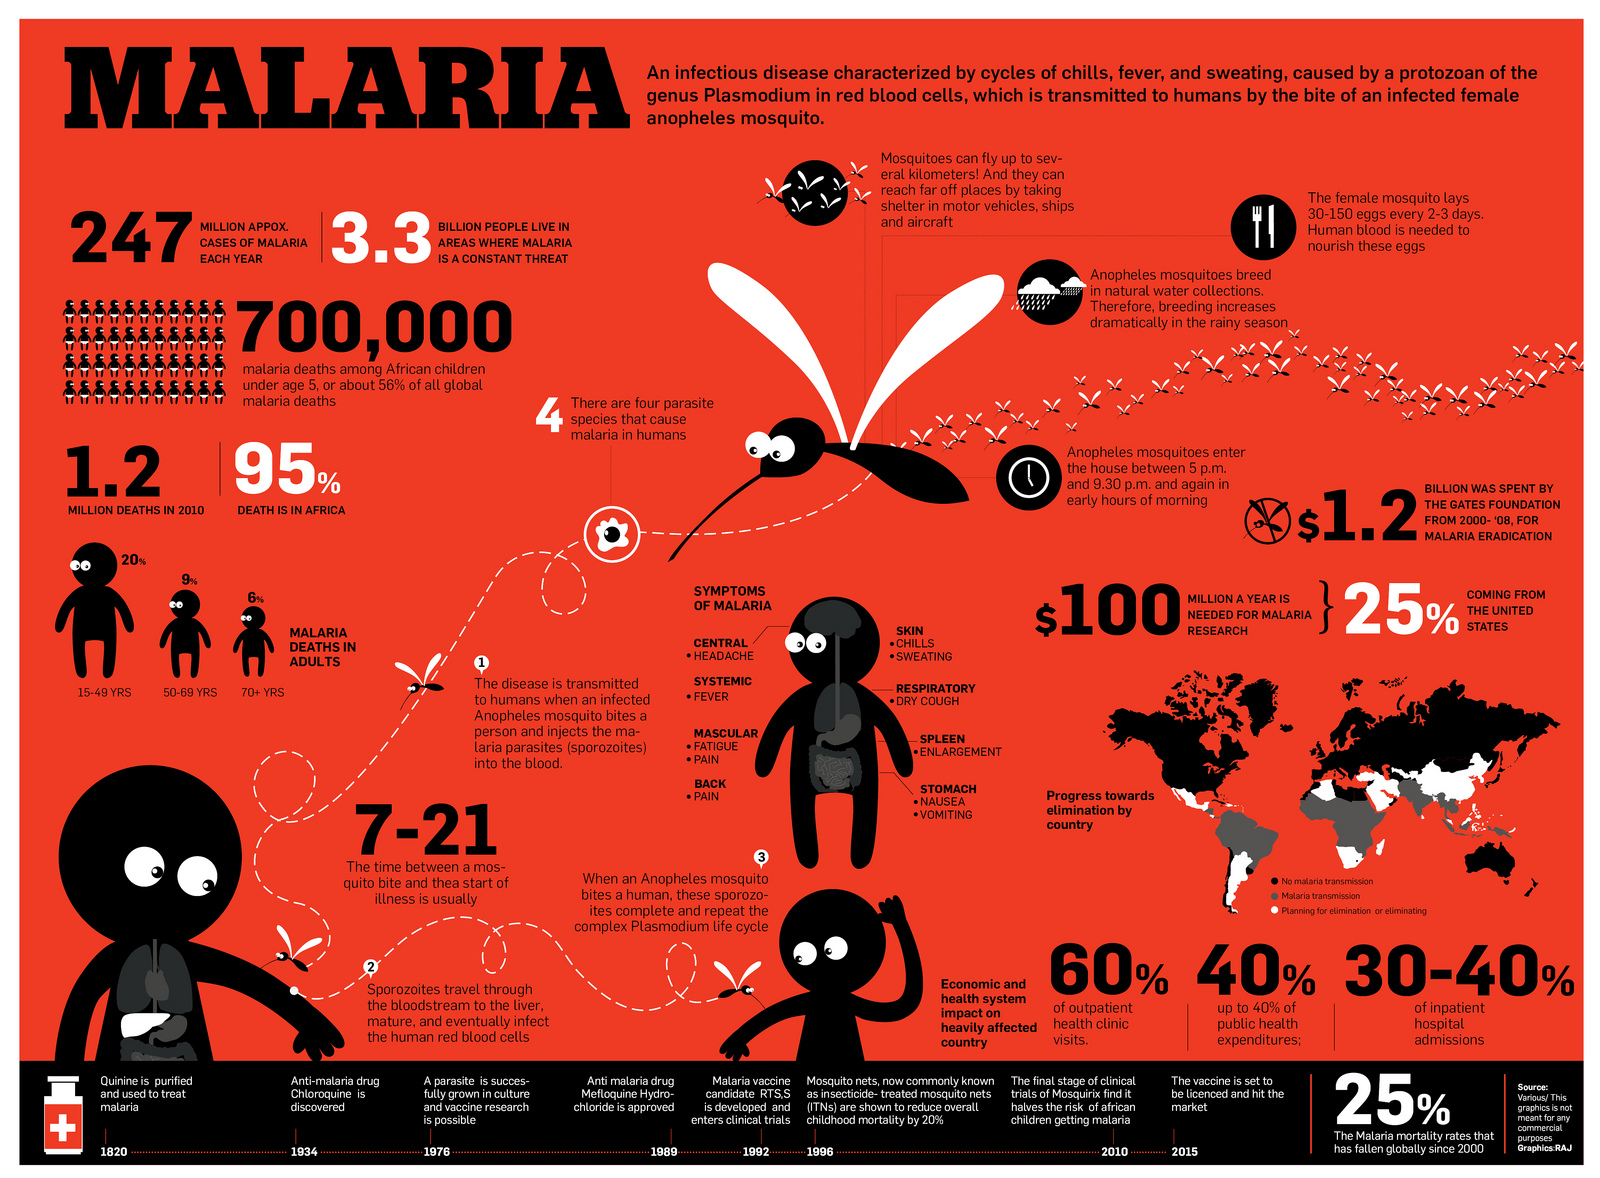 An infographic on the prevalance of malaria